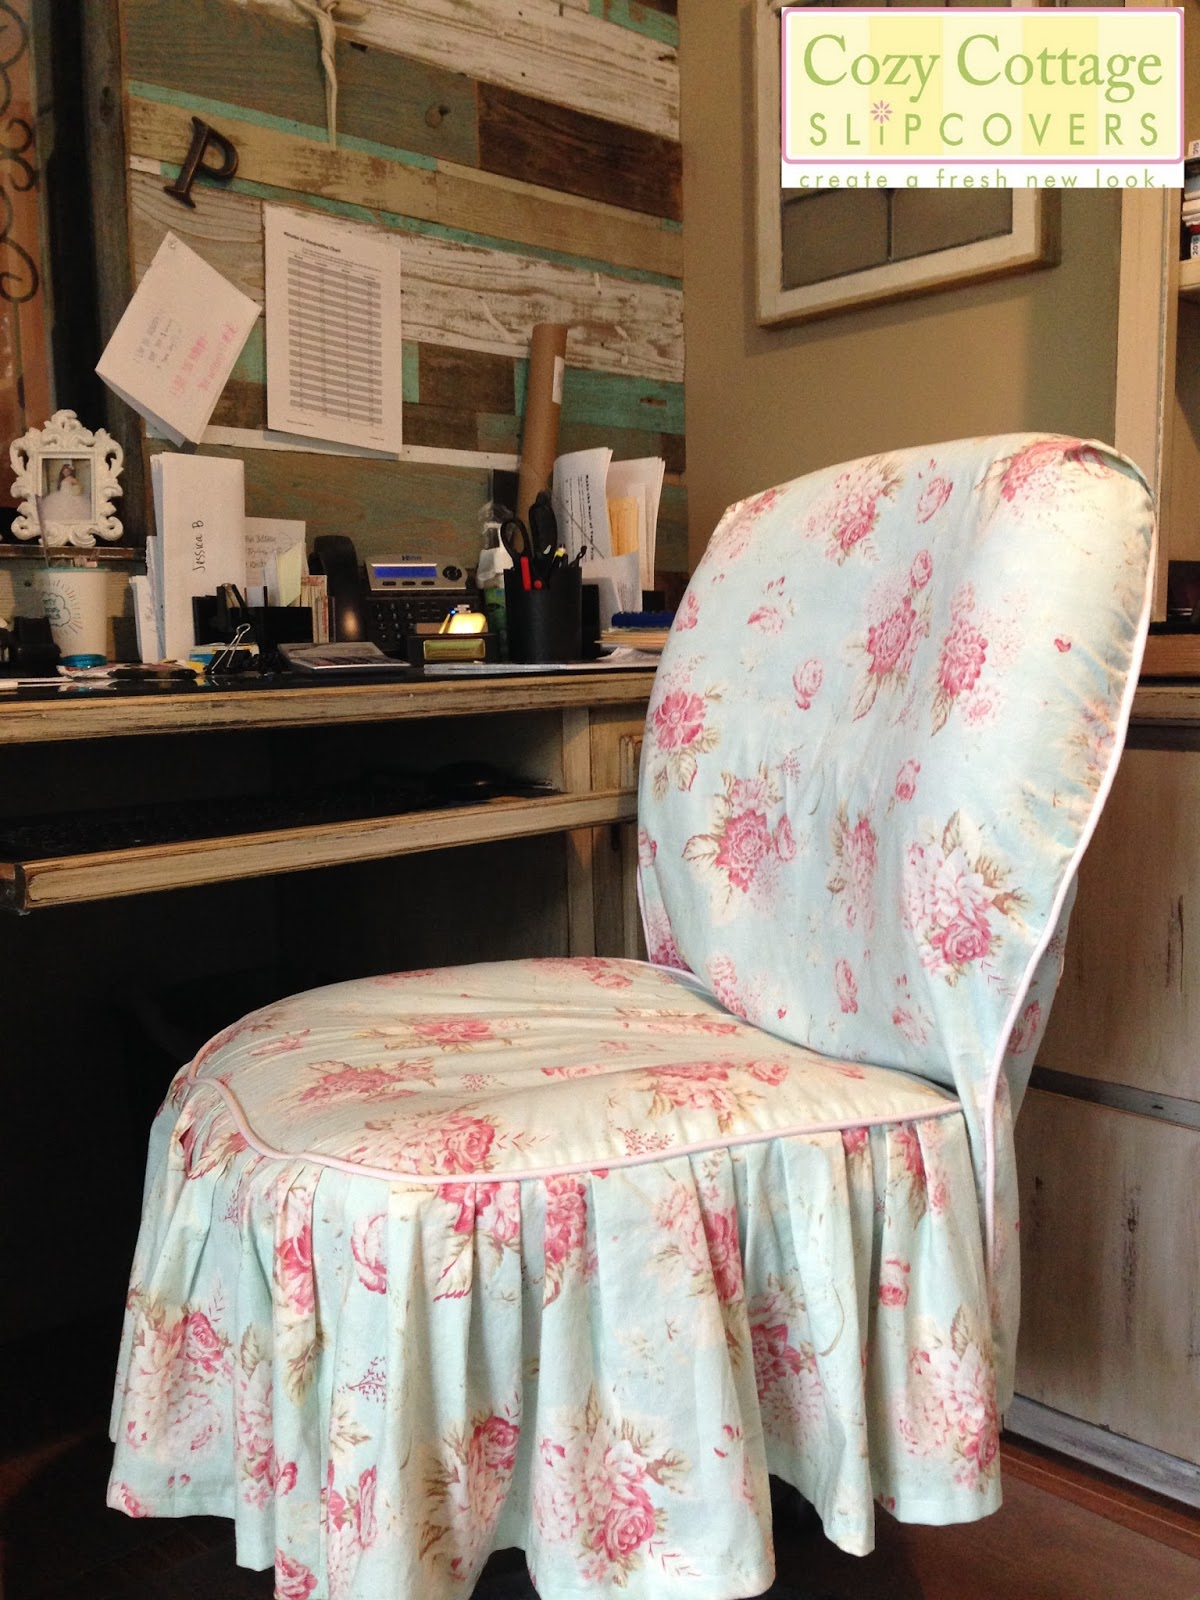 Cozy Cottage Slipcovers: Shabby Chic Texas Style in the Office